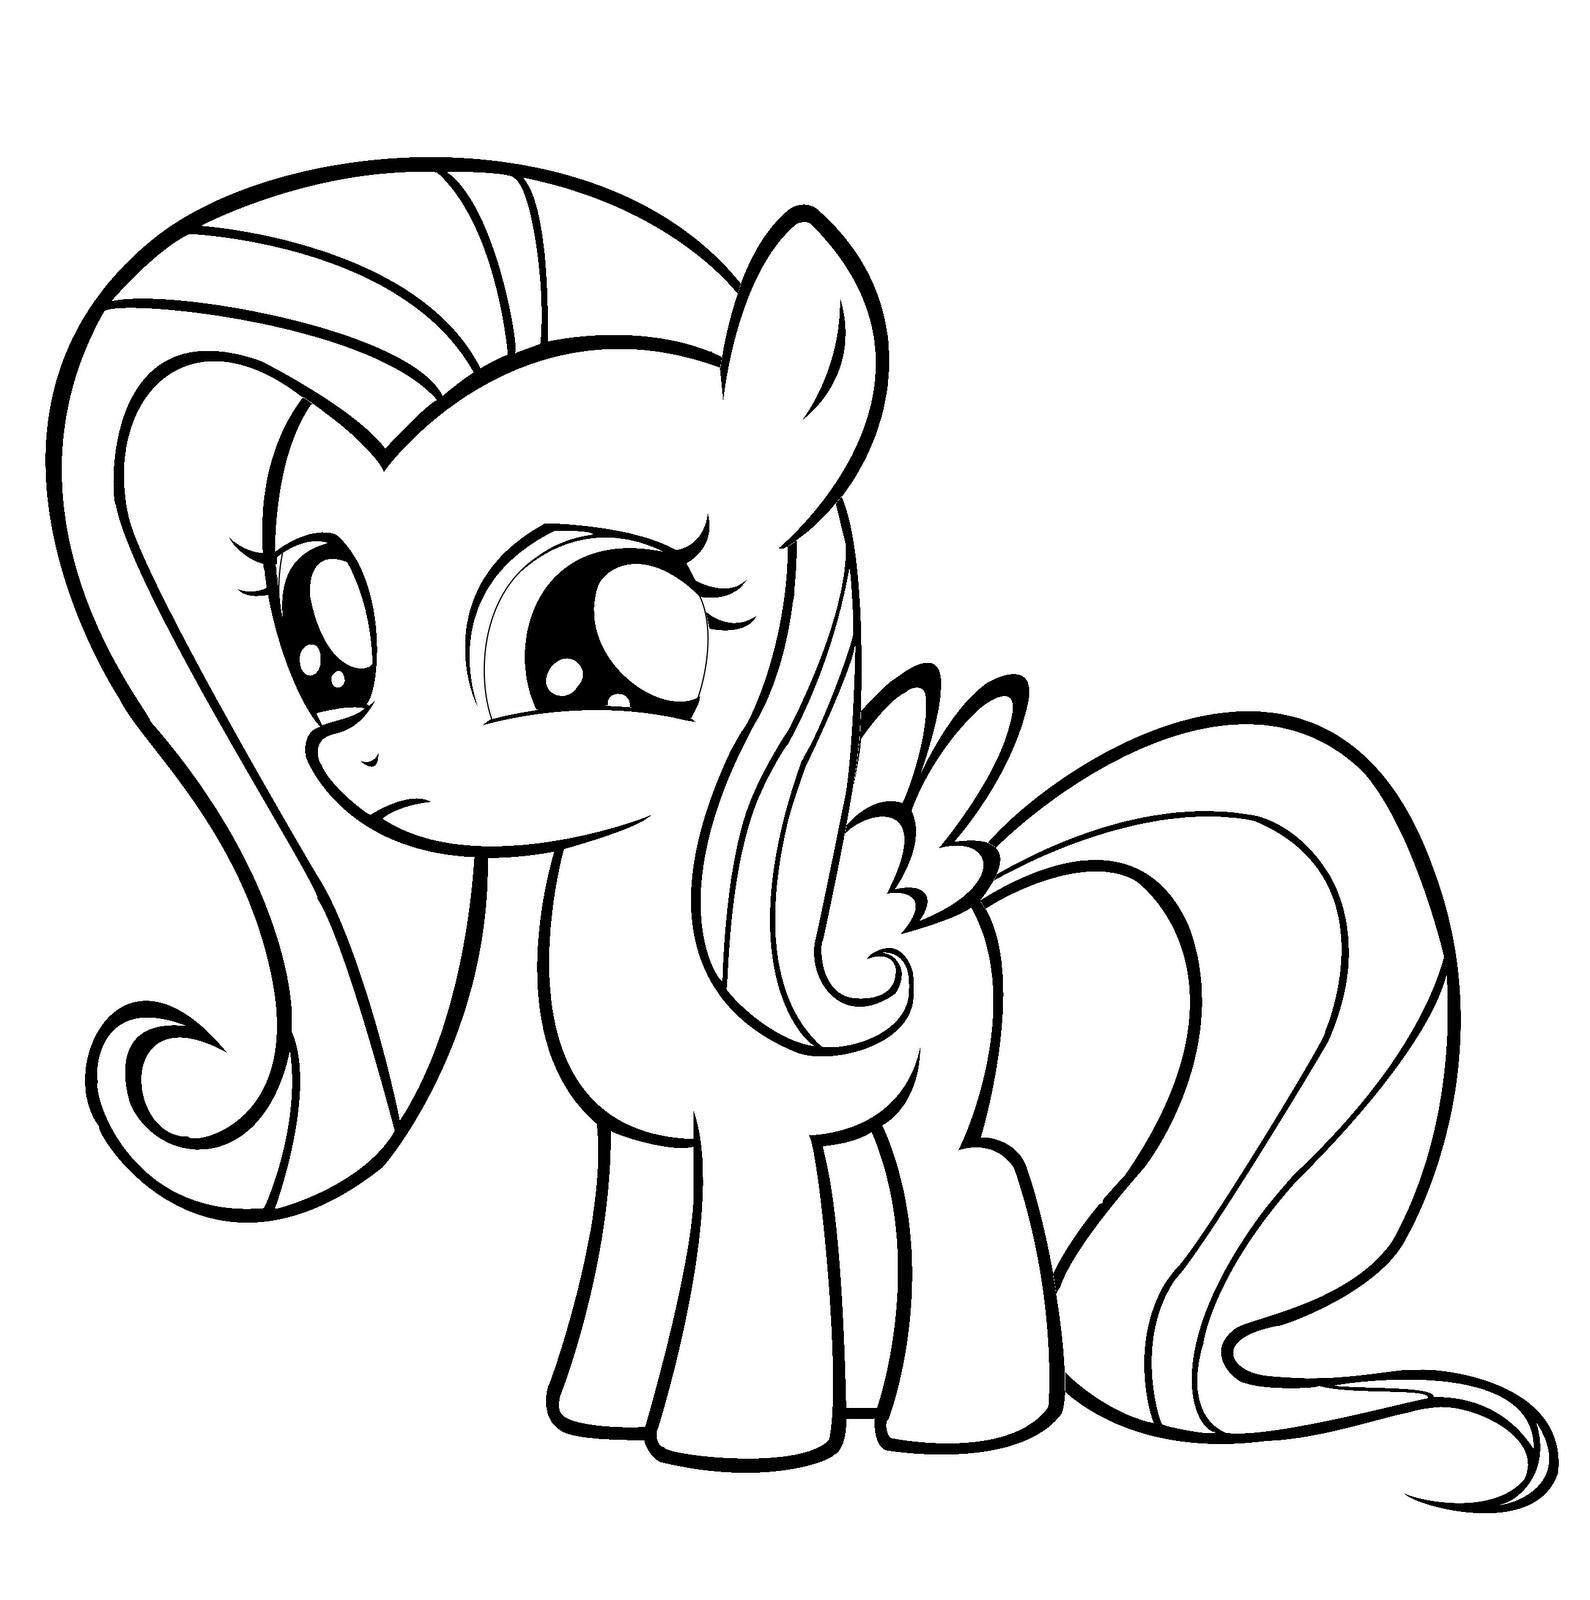 Nice My Little Pony Coloring Pages Of Fluttershy that you